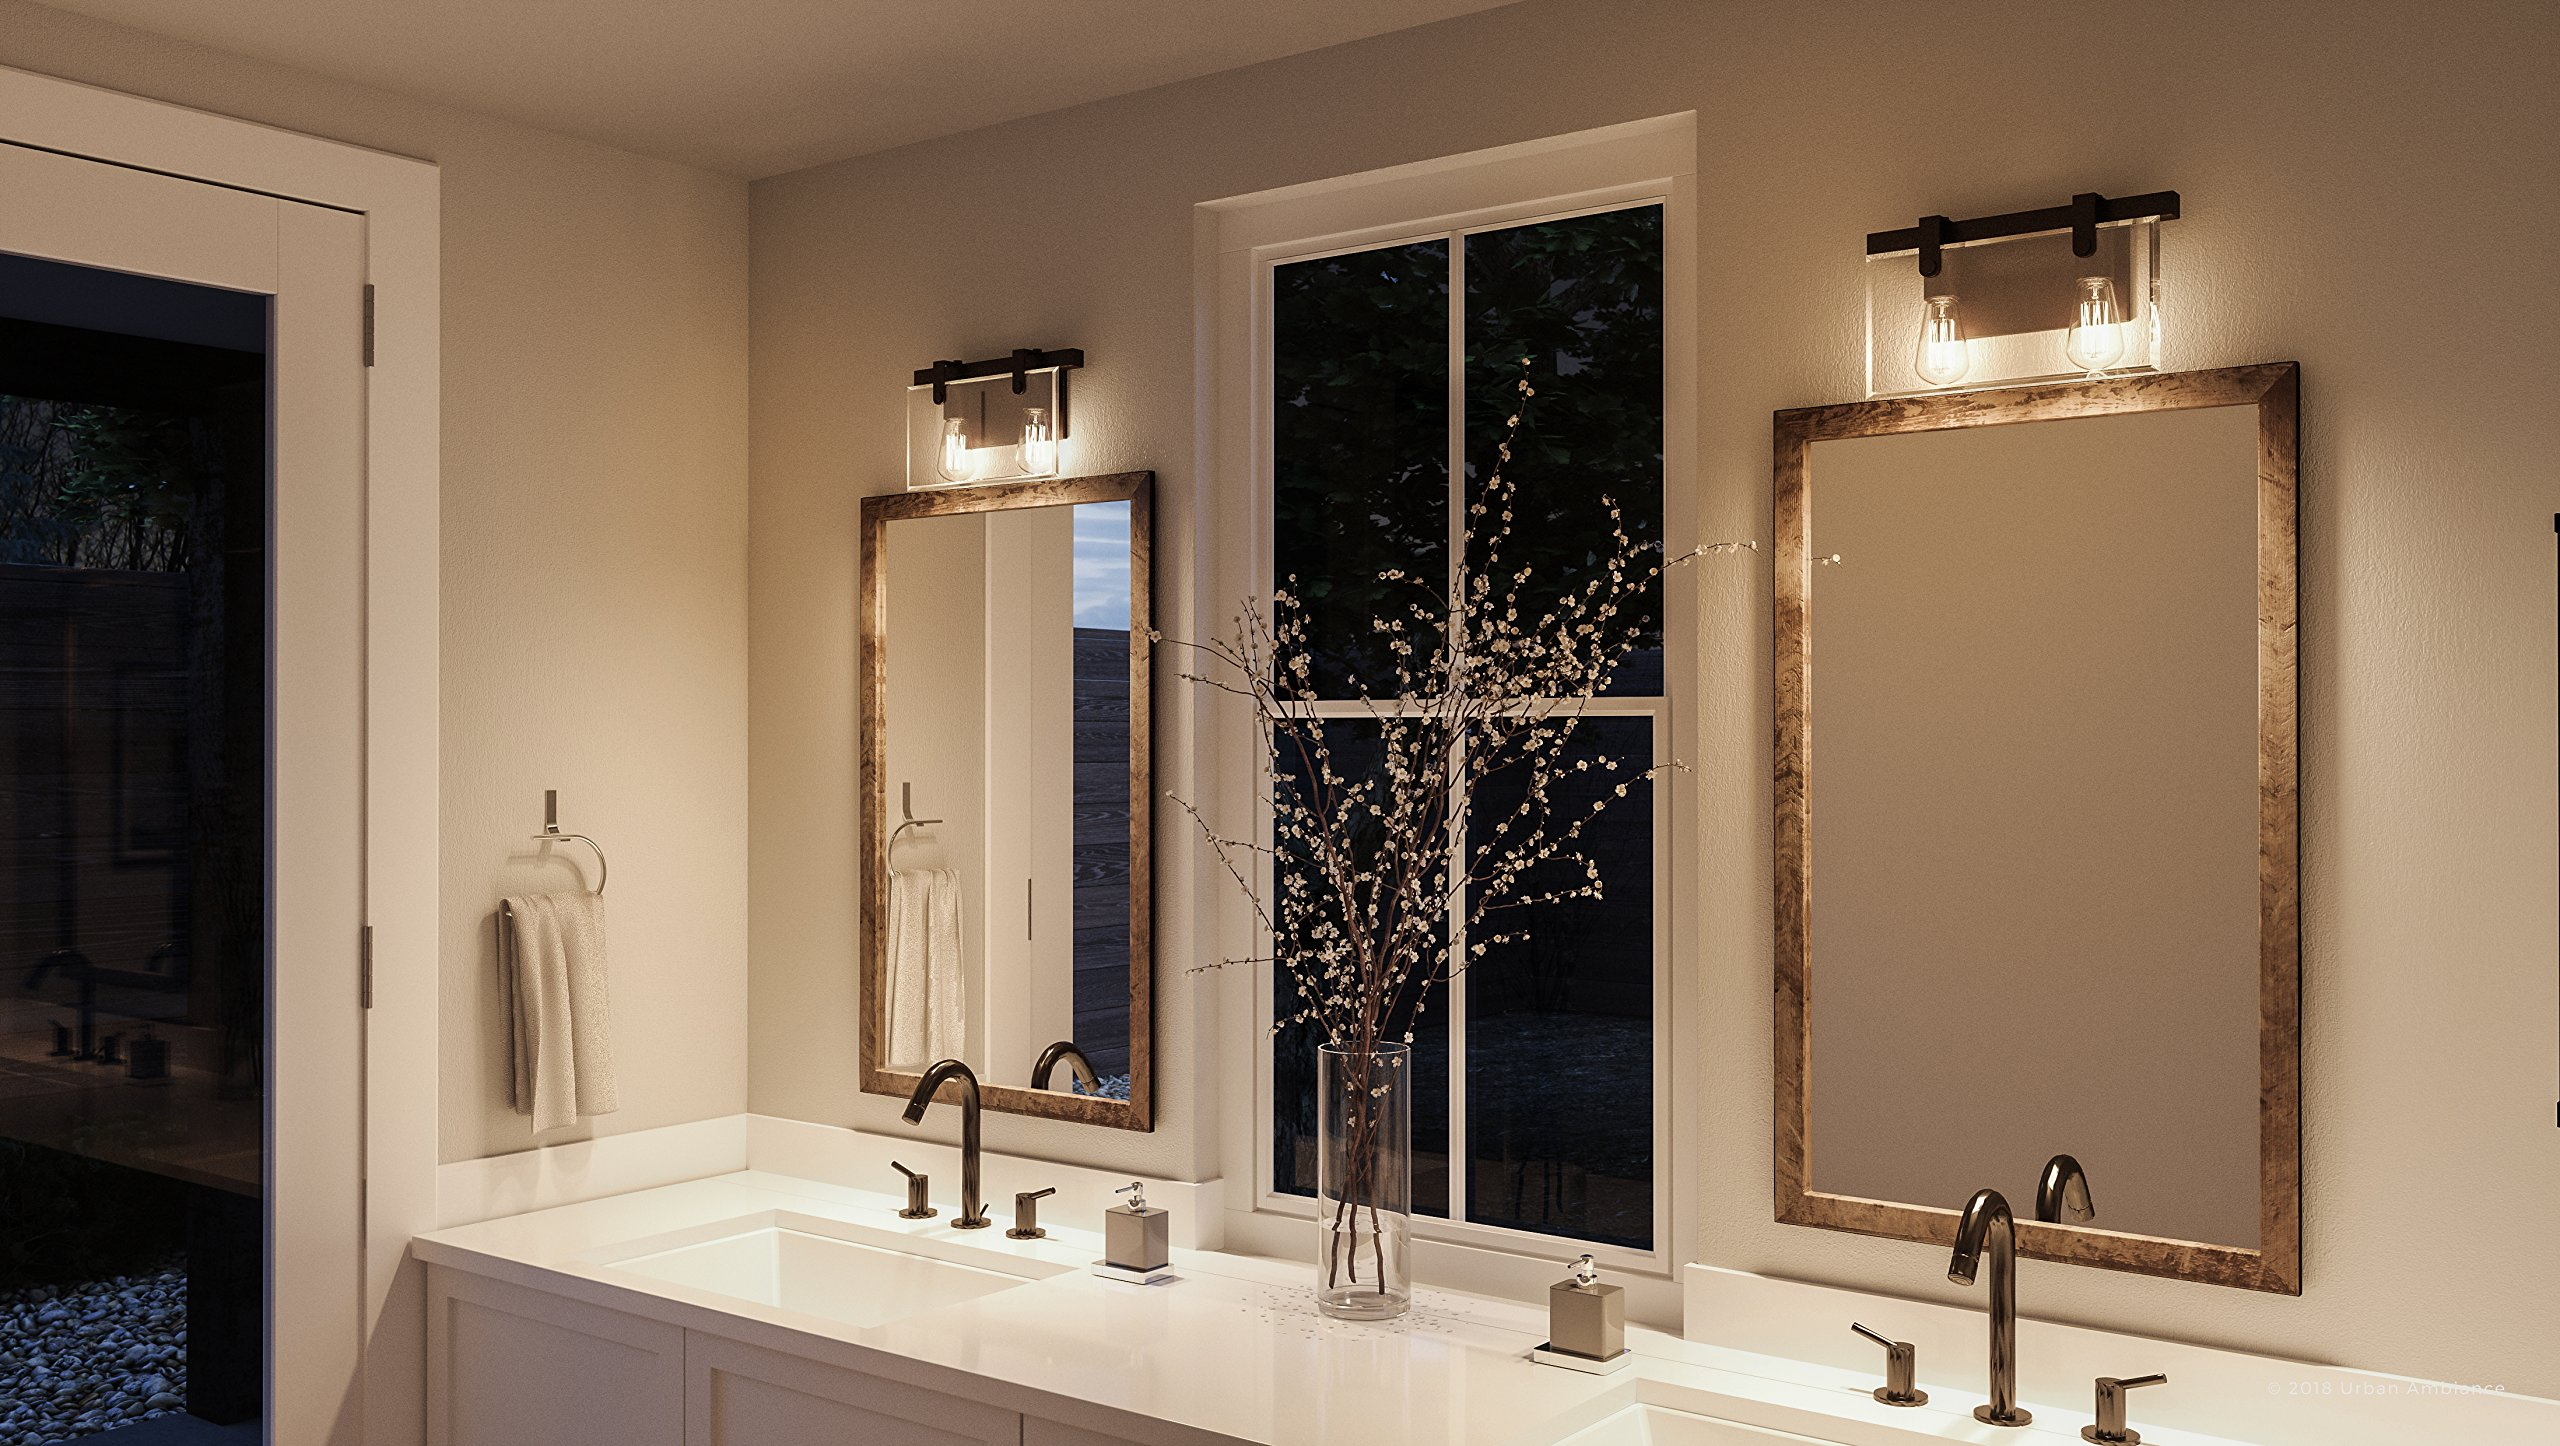 Luxury Modern Farmhouse Bathroom Vanity Light, Medium Size: 8.38'' H x 14.875'' W, with Industrial Chic Style Elements, Olde Bronze Finish, UHP2452 from The Bristol Collection by Urban Ambiance by Urban Ambiance (Image #2)